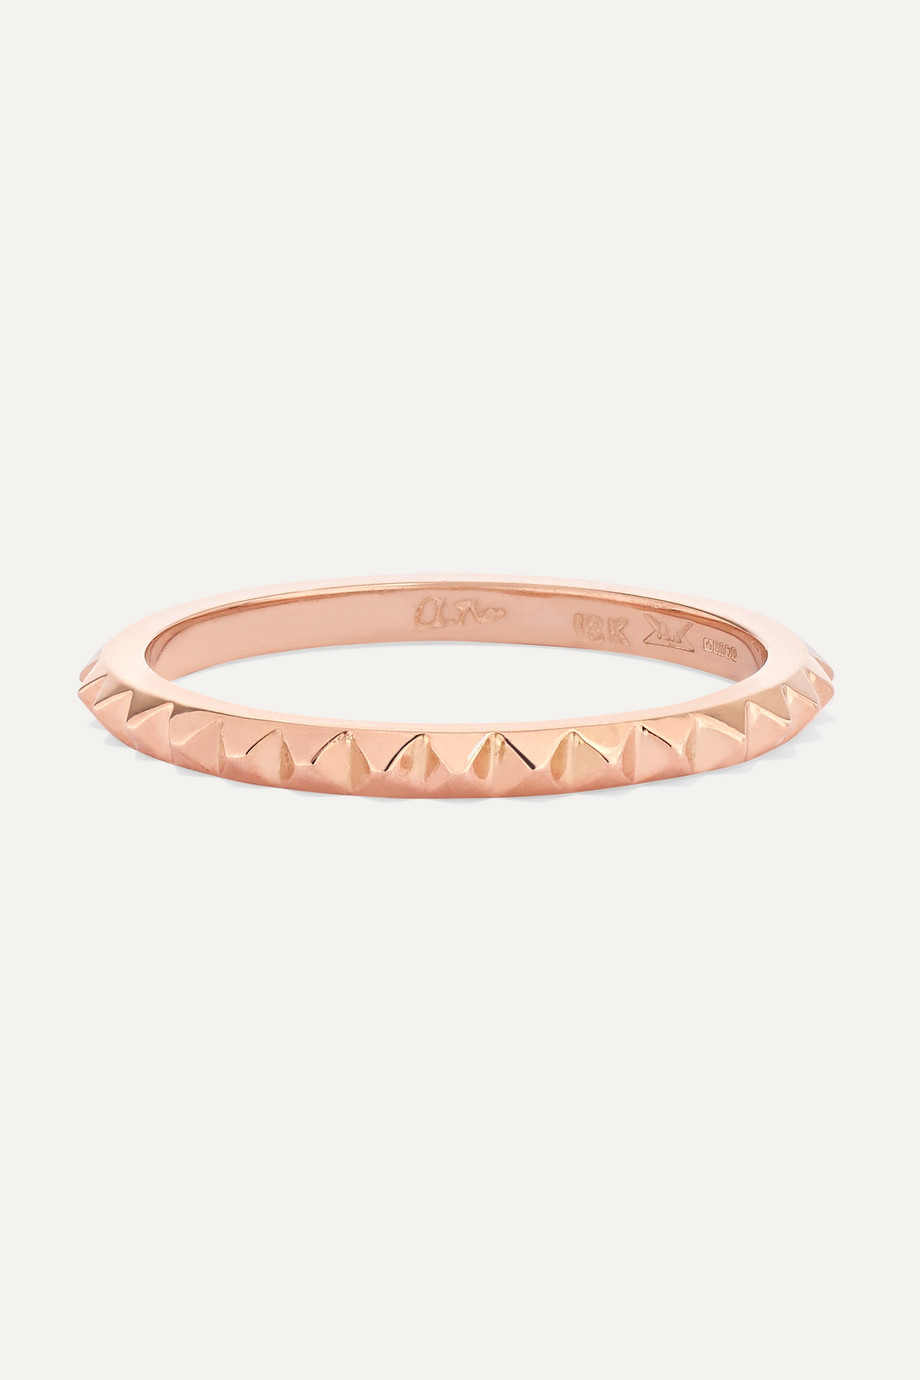 Anita Ko Spike 18-karat rose gold eternity ring